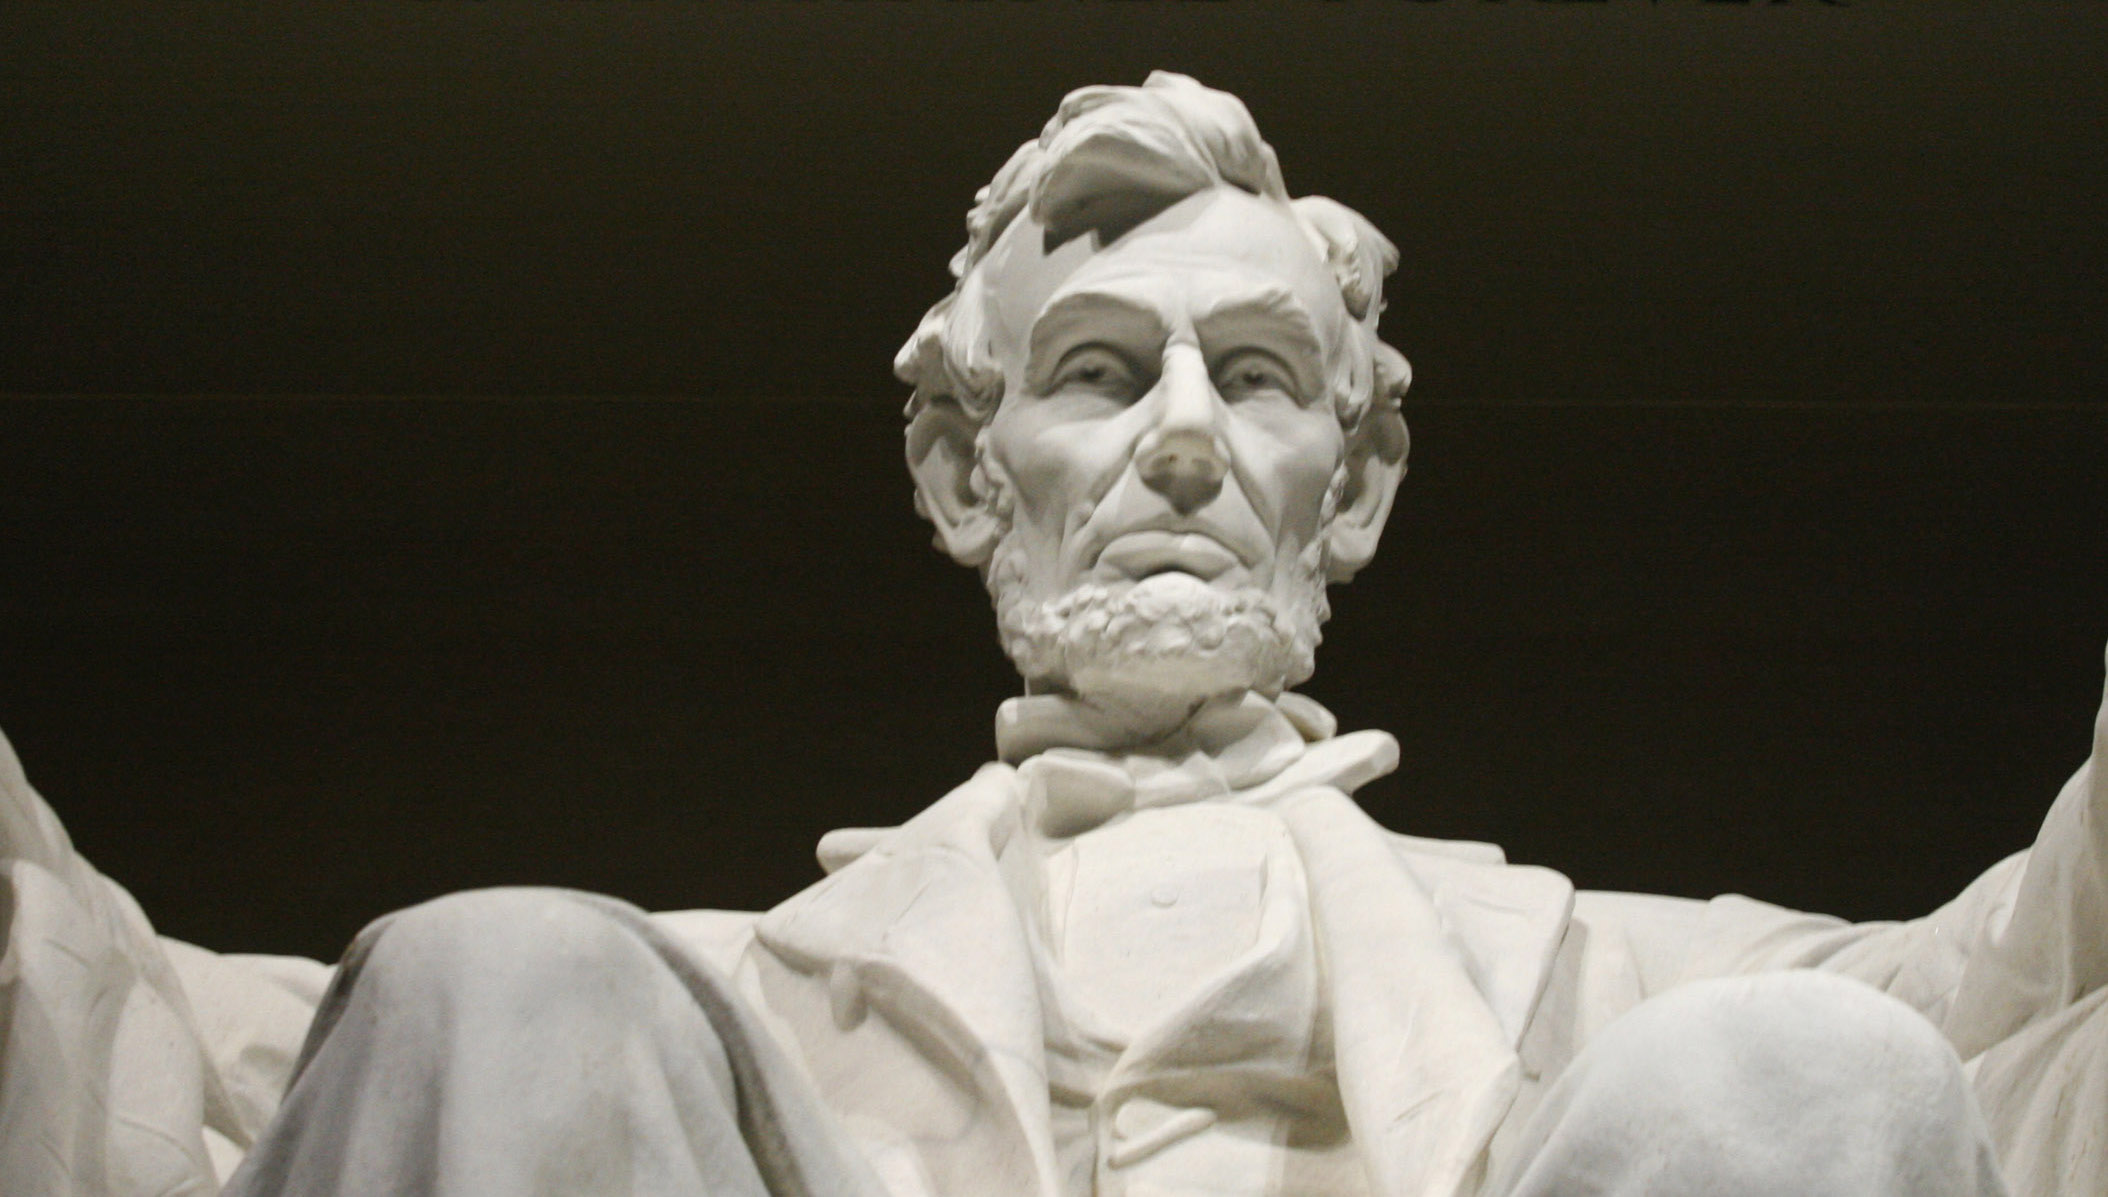 The statue of Abraham Lincoln at the Lincoln Memorial in Washington